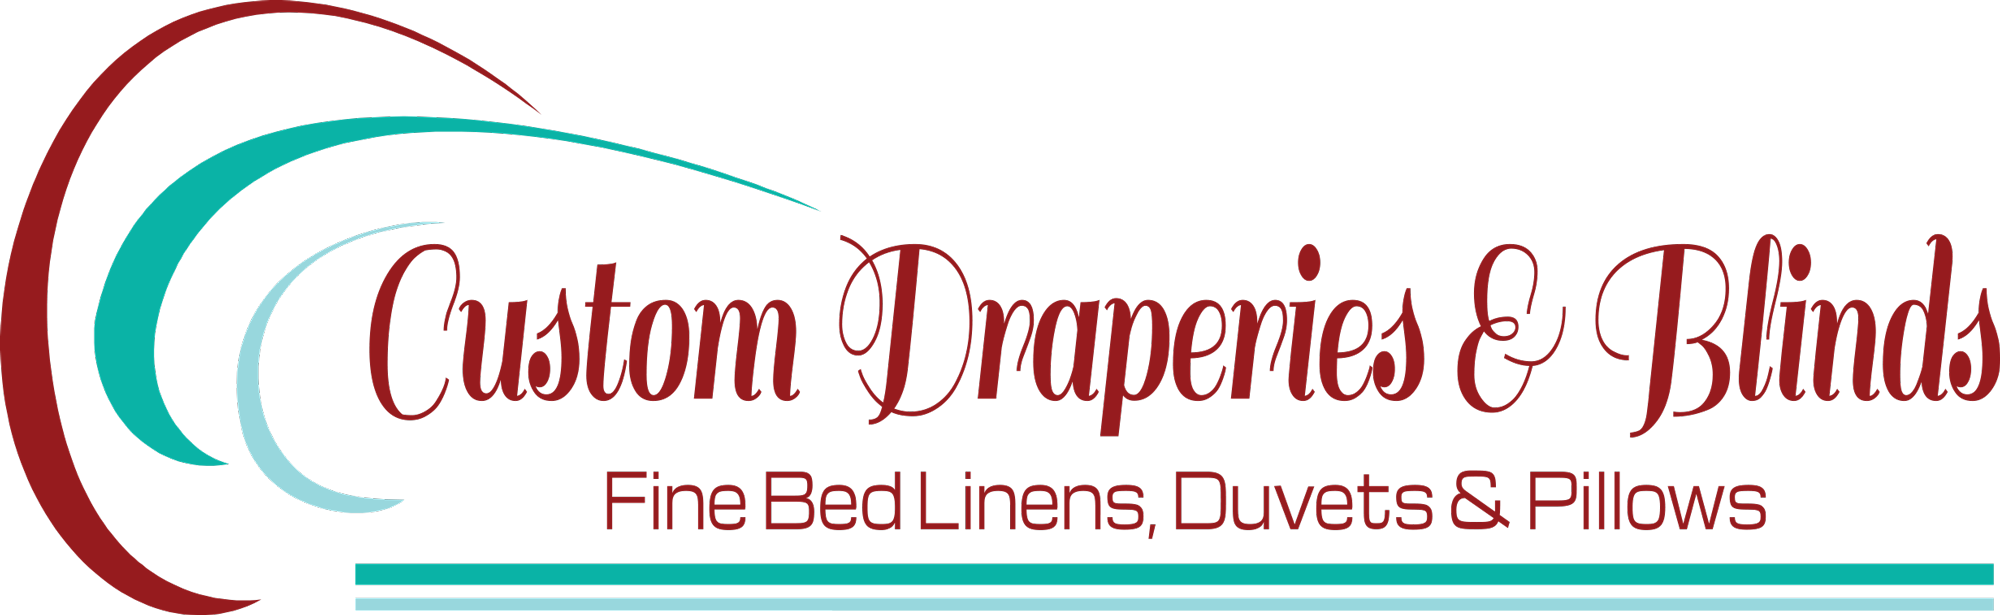 Custom Draperies Blinds & Bedding